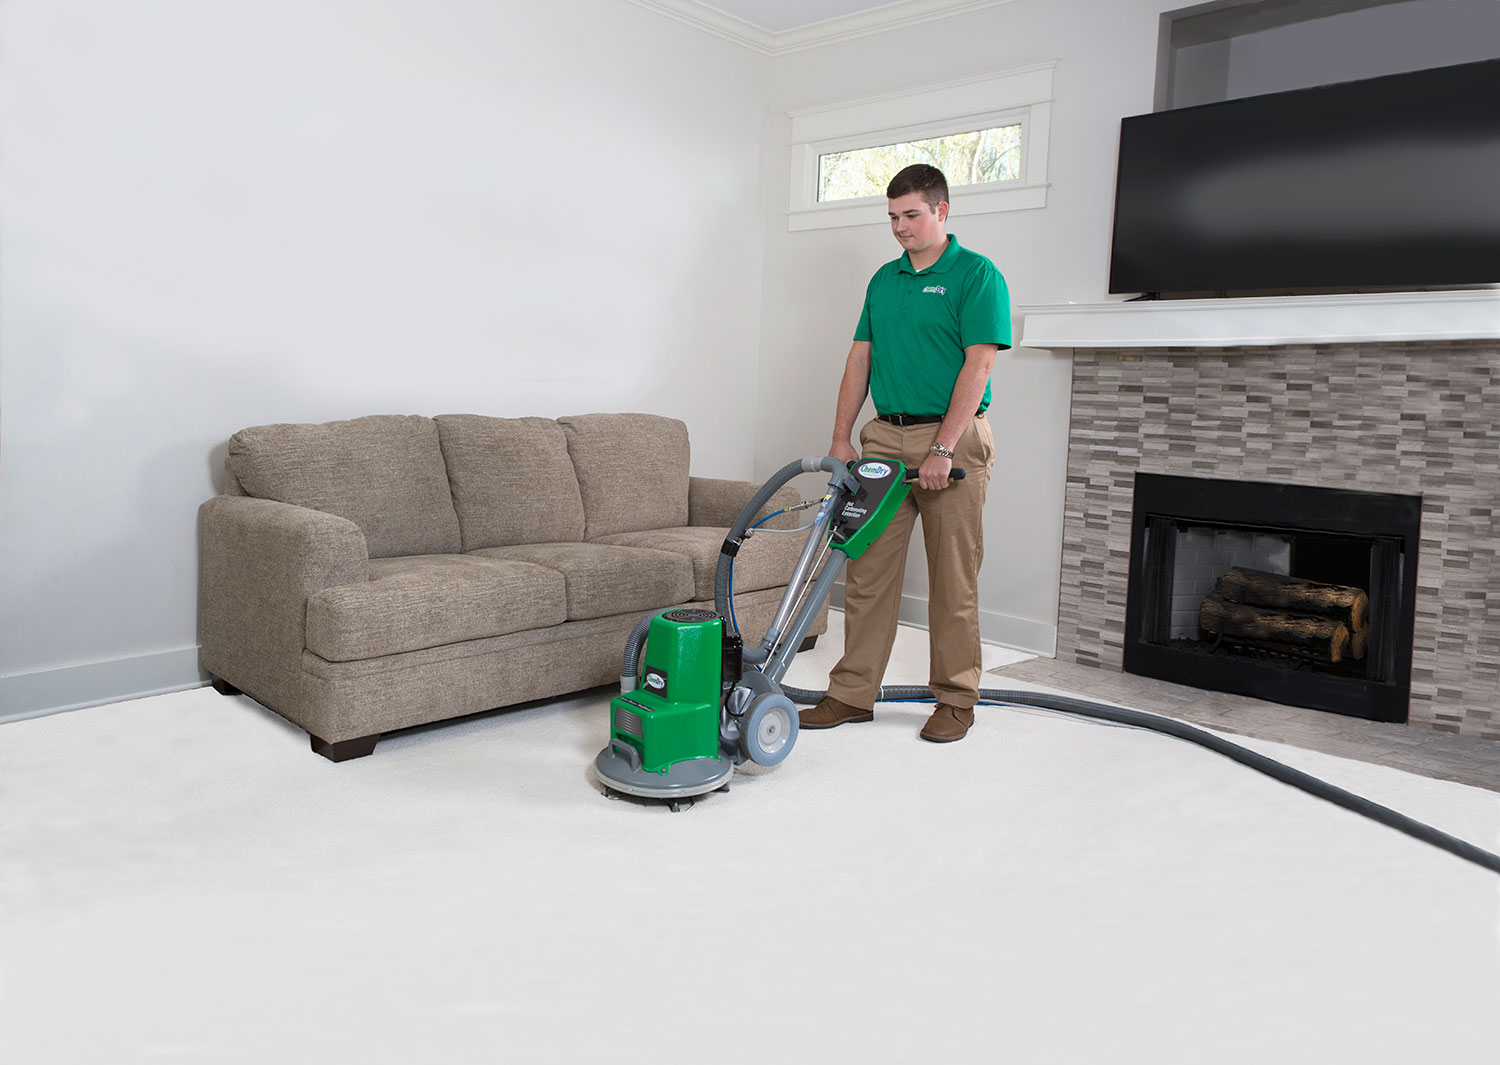 carpet cleaning technician at work